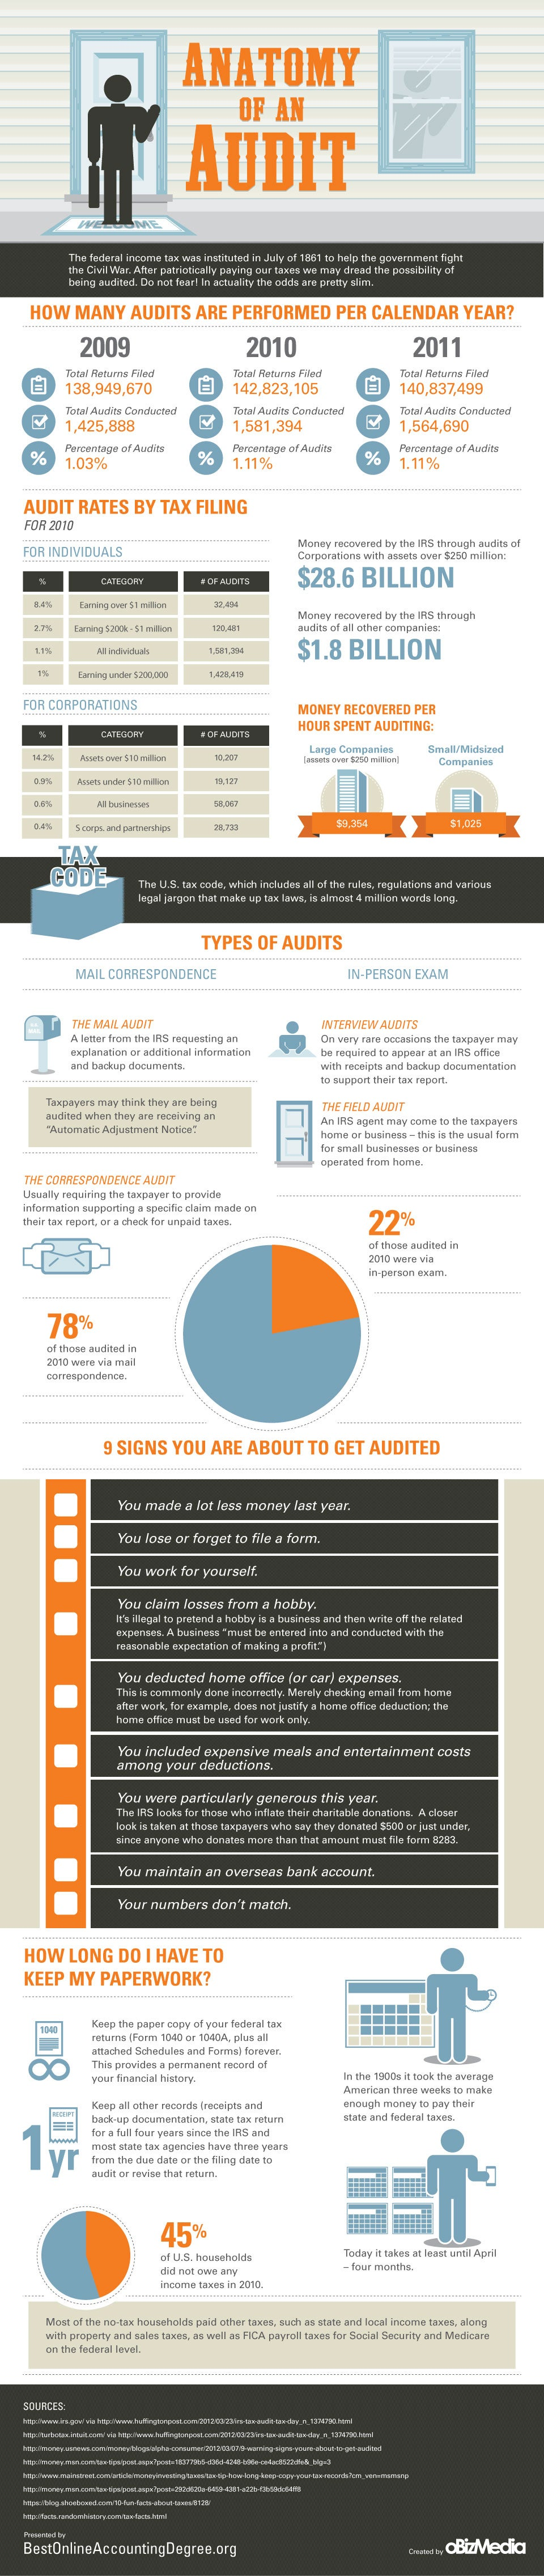 Signs That You Are About to Get Audited (Infographic)